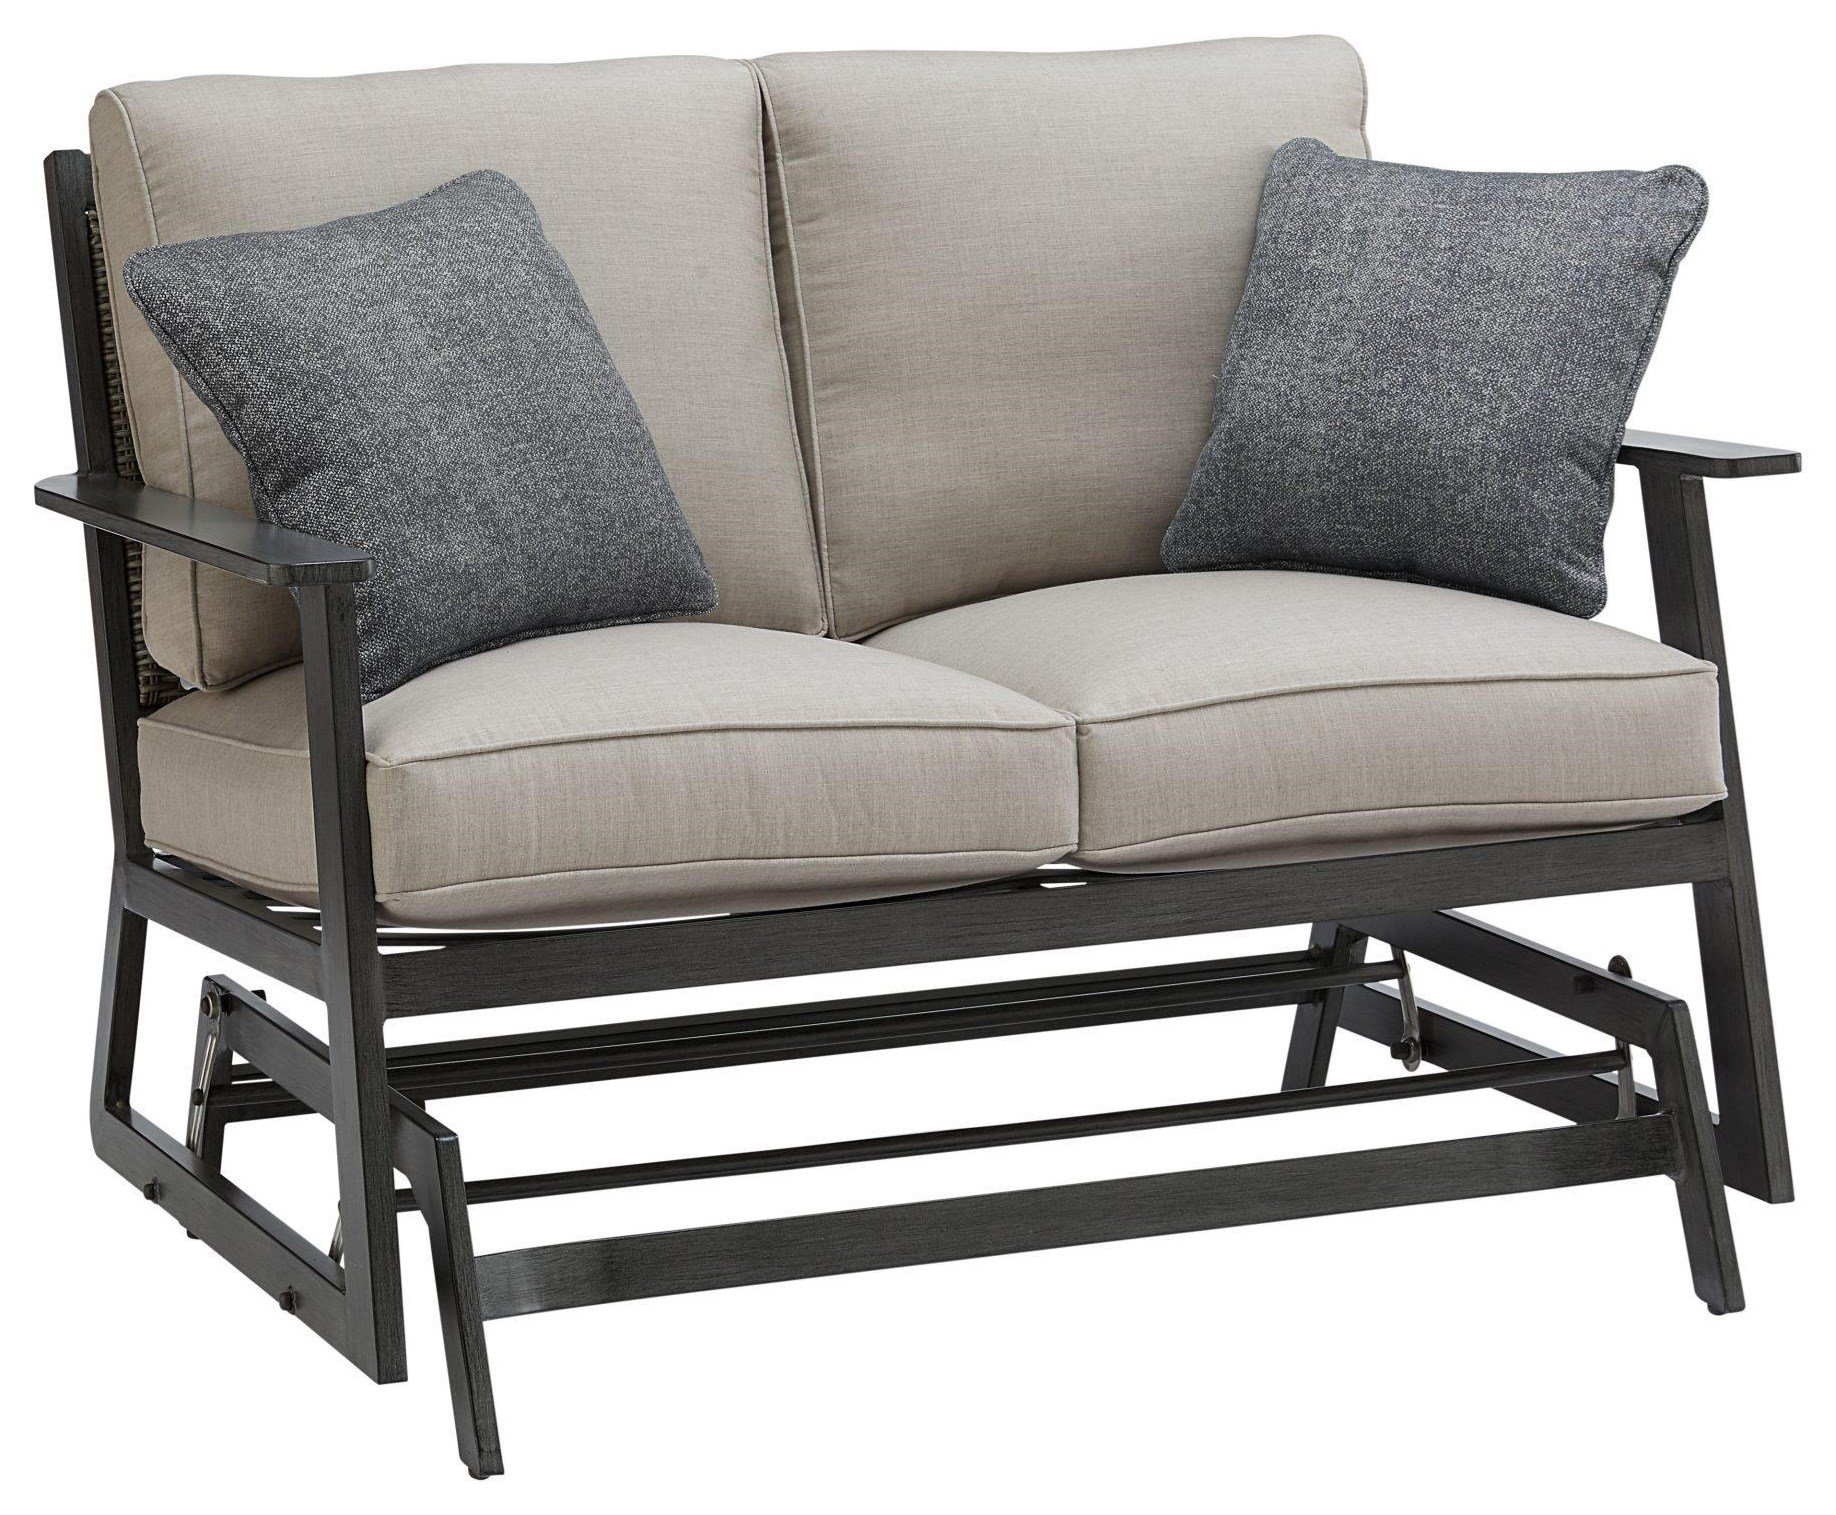 Adison LOVESEAT GLIDER With 2 Pillows by Apricity Outdoor at Johnny Janosik